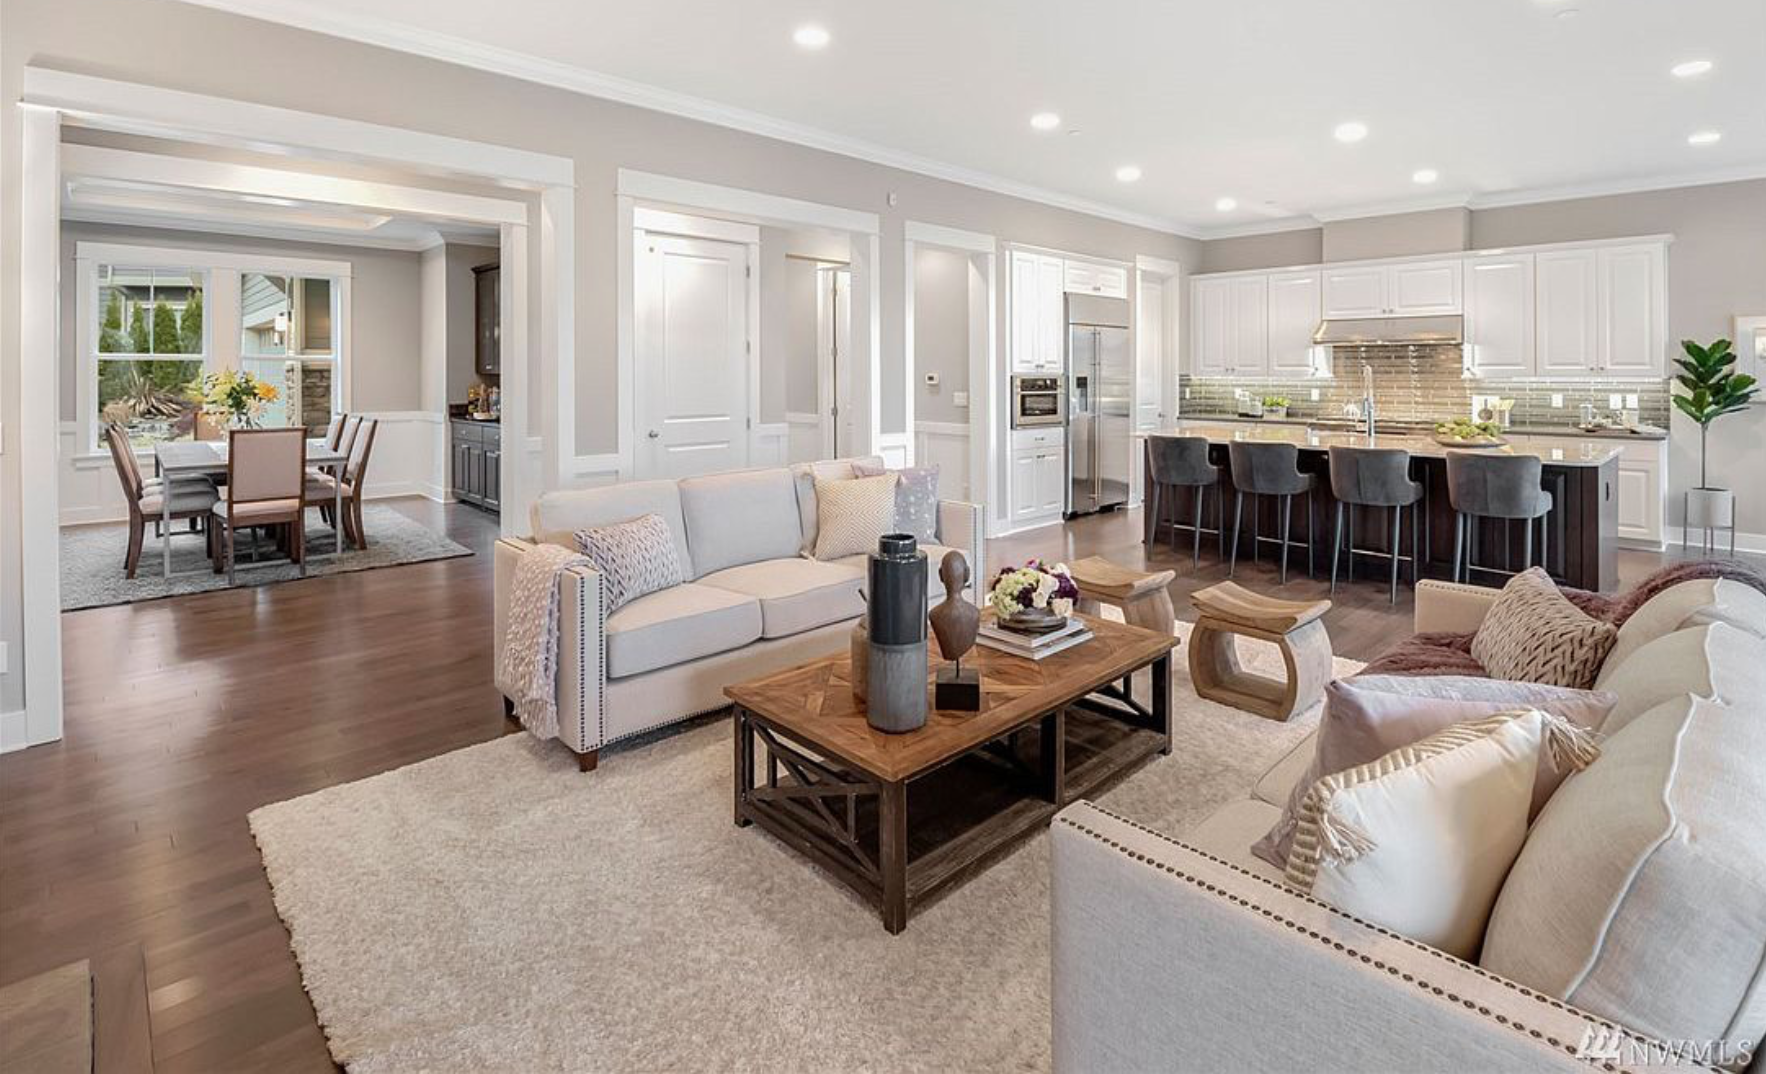 The unbelievable open floor plan makes for the perfect home to entertain in!